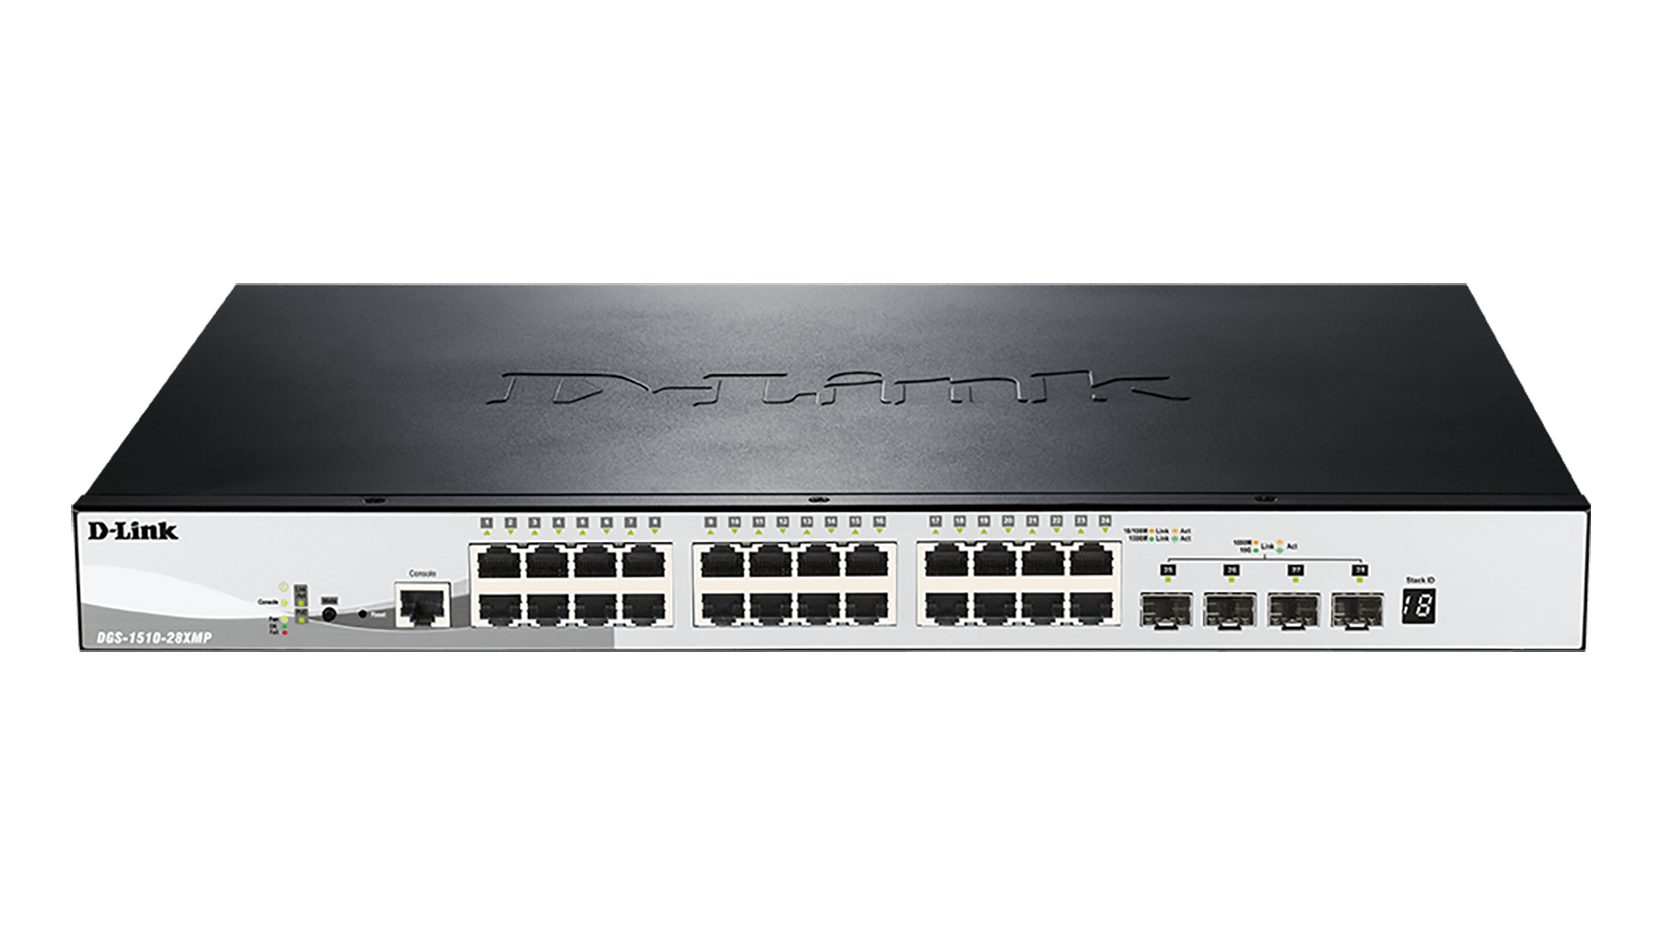 28-Port Gigabit Stackable PoE Smart Managed Switch including 4 10G SFP+ (24 x PoE ports, 370 W PoE budget)